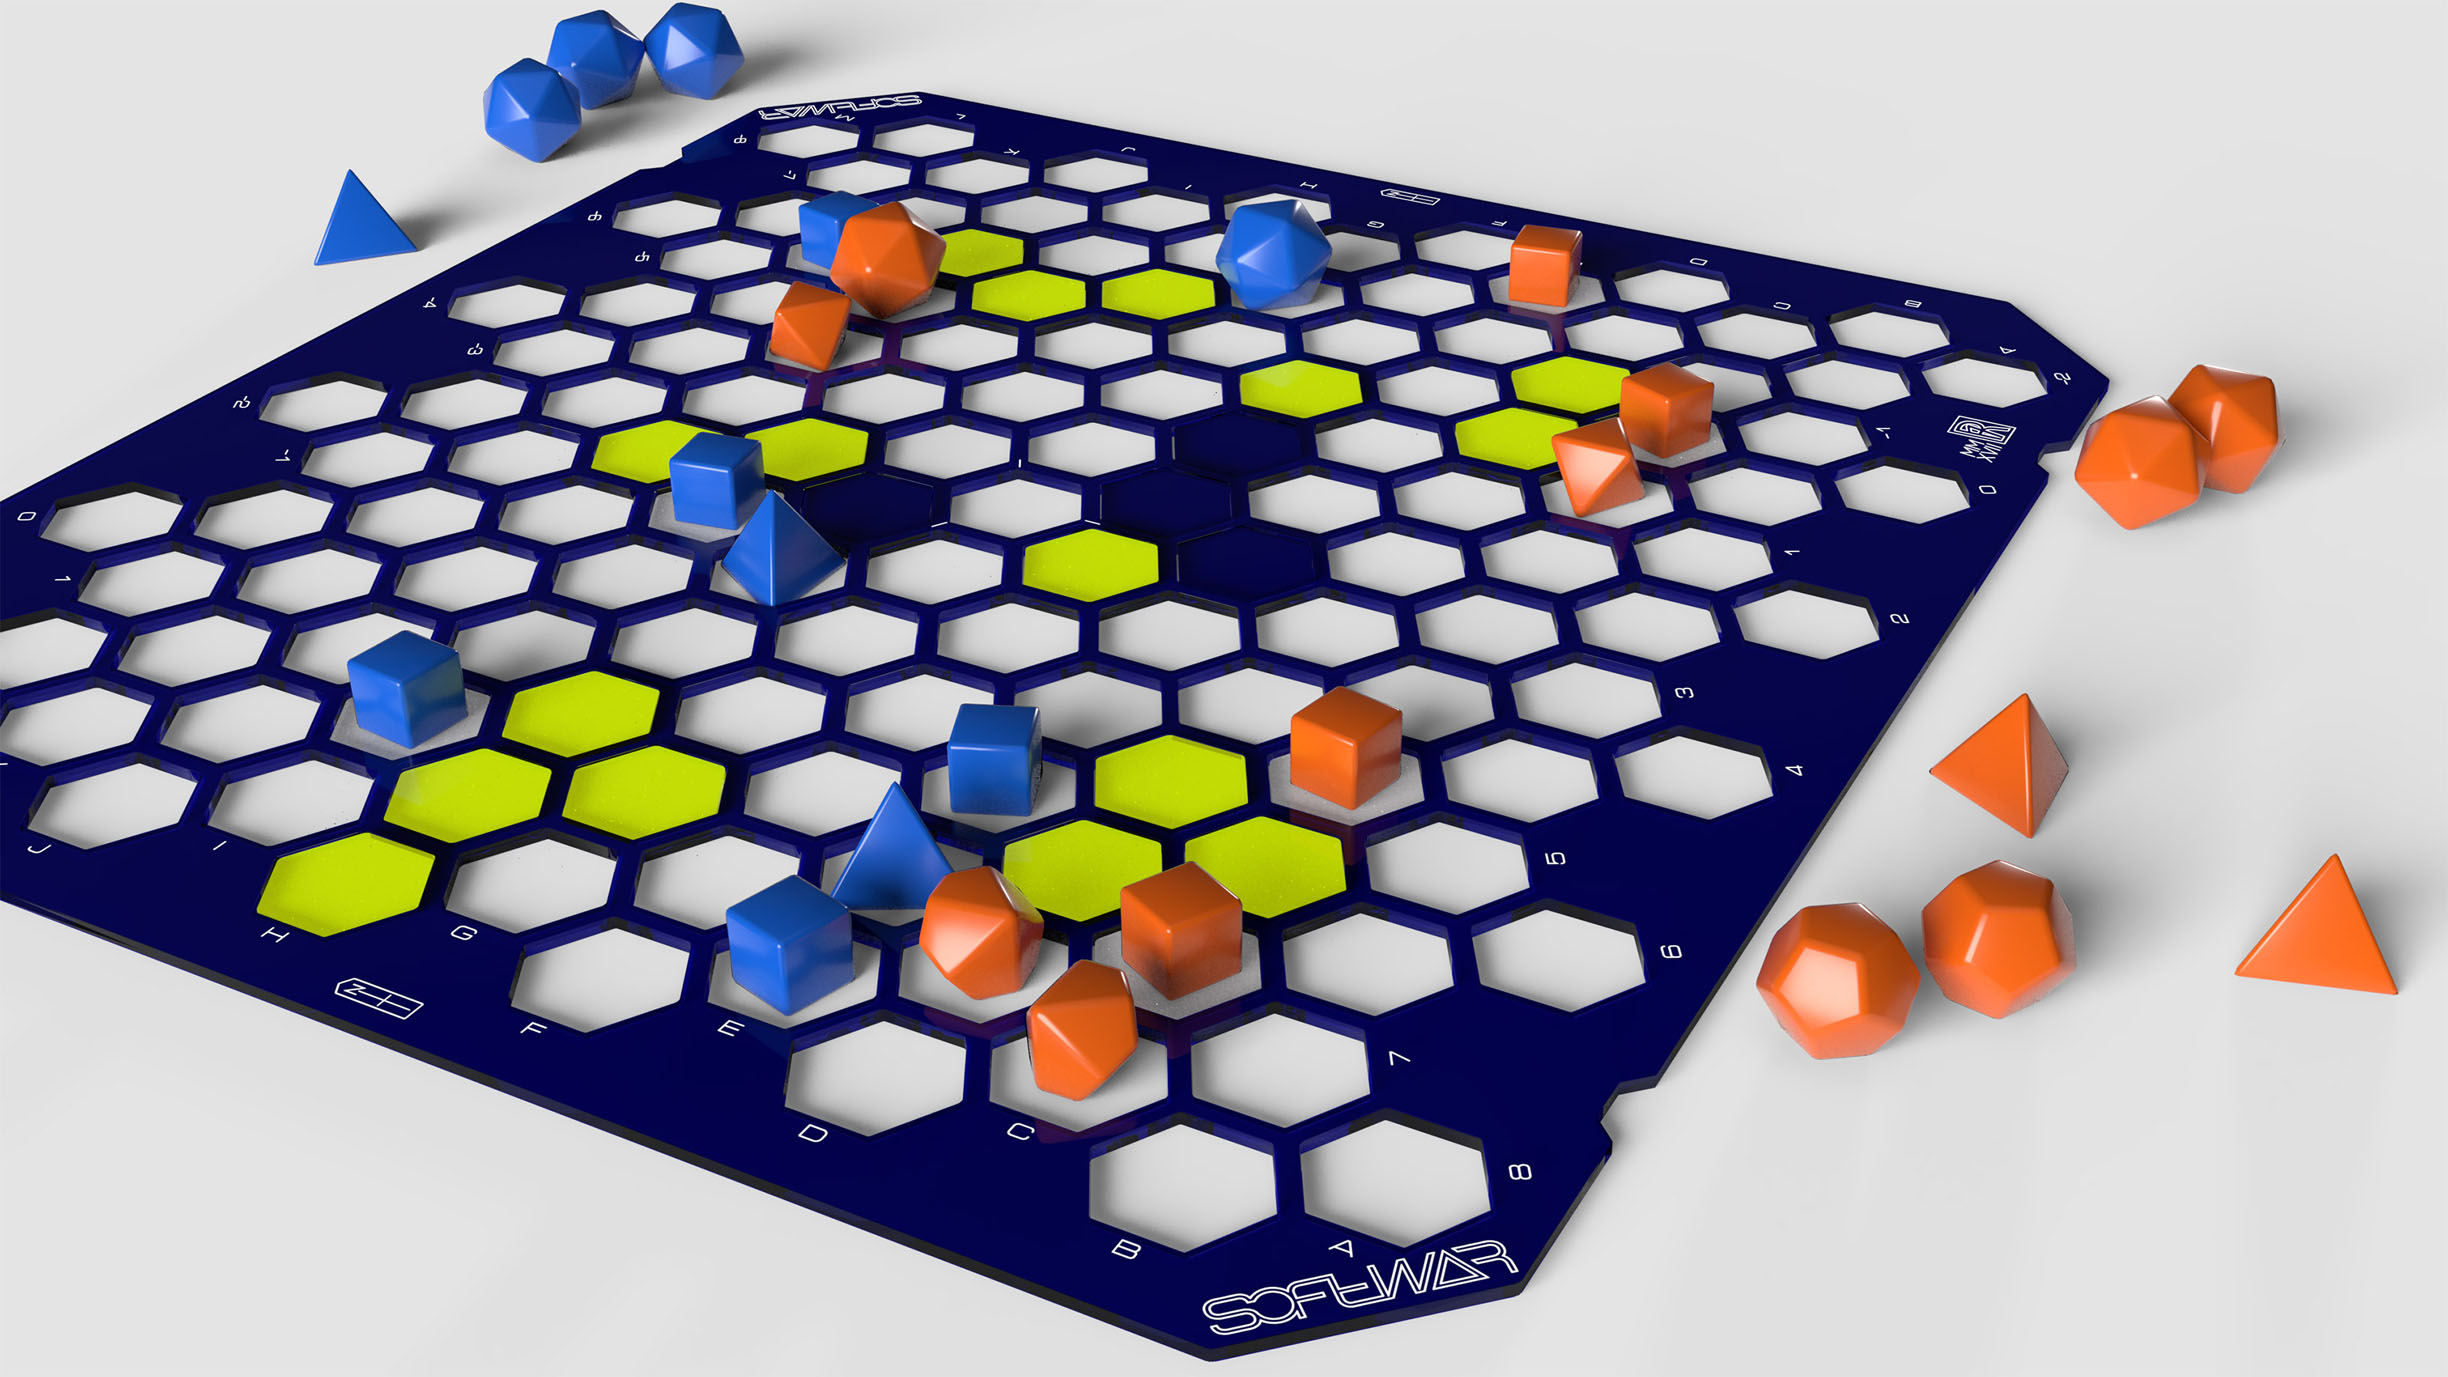 Blue with Fluorescent Yellow tiles | Blue and Orange dice